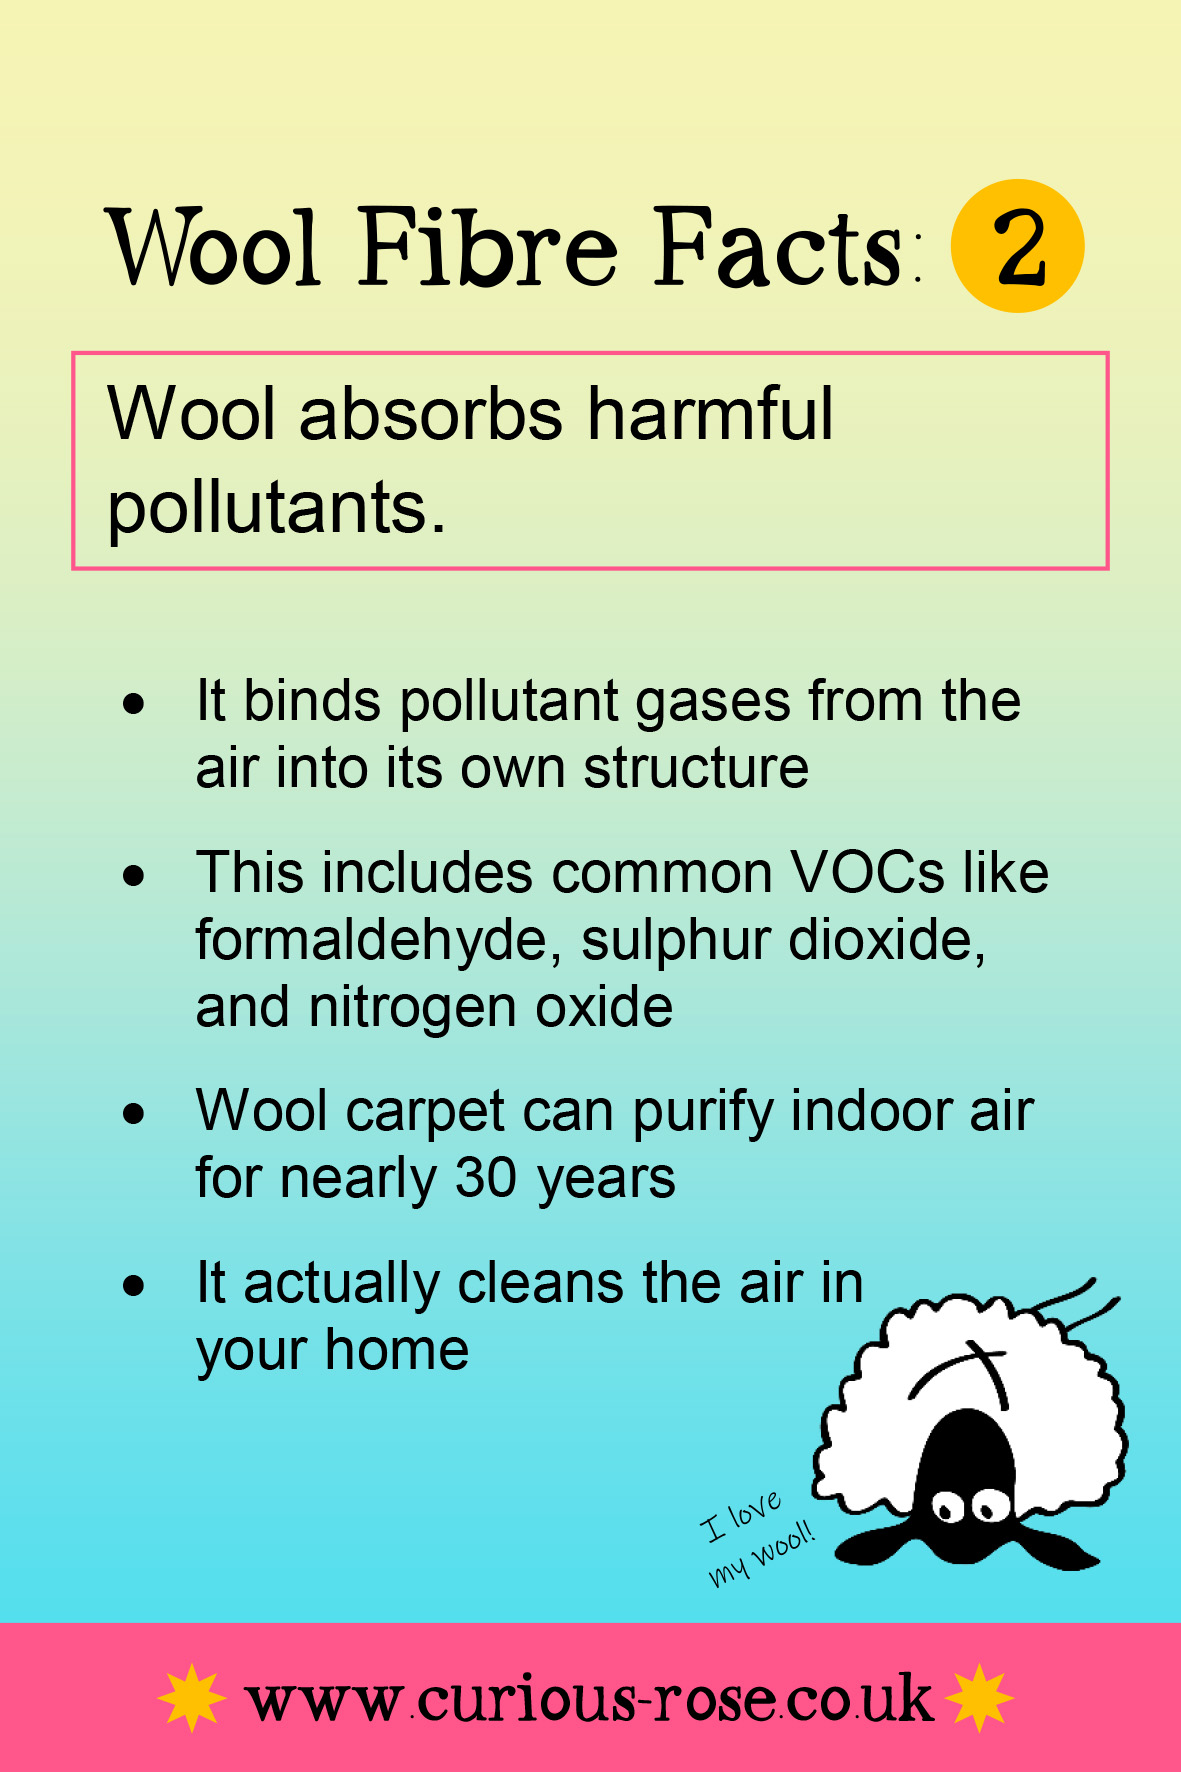 Wool Fibre Facts 2.jpg